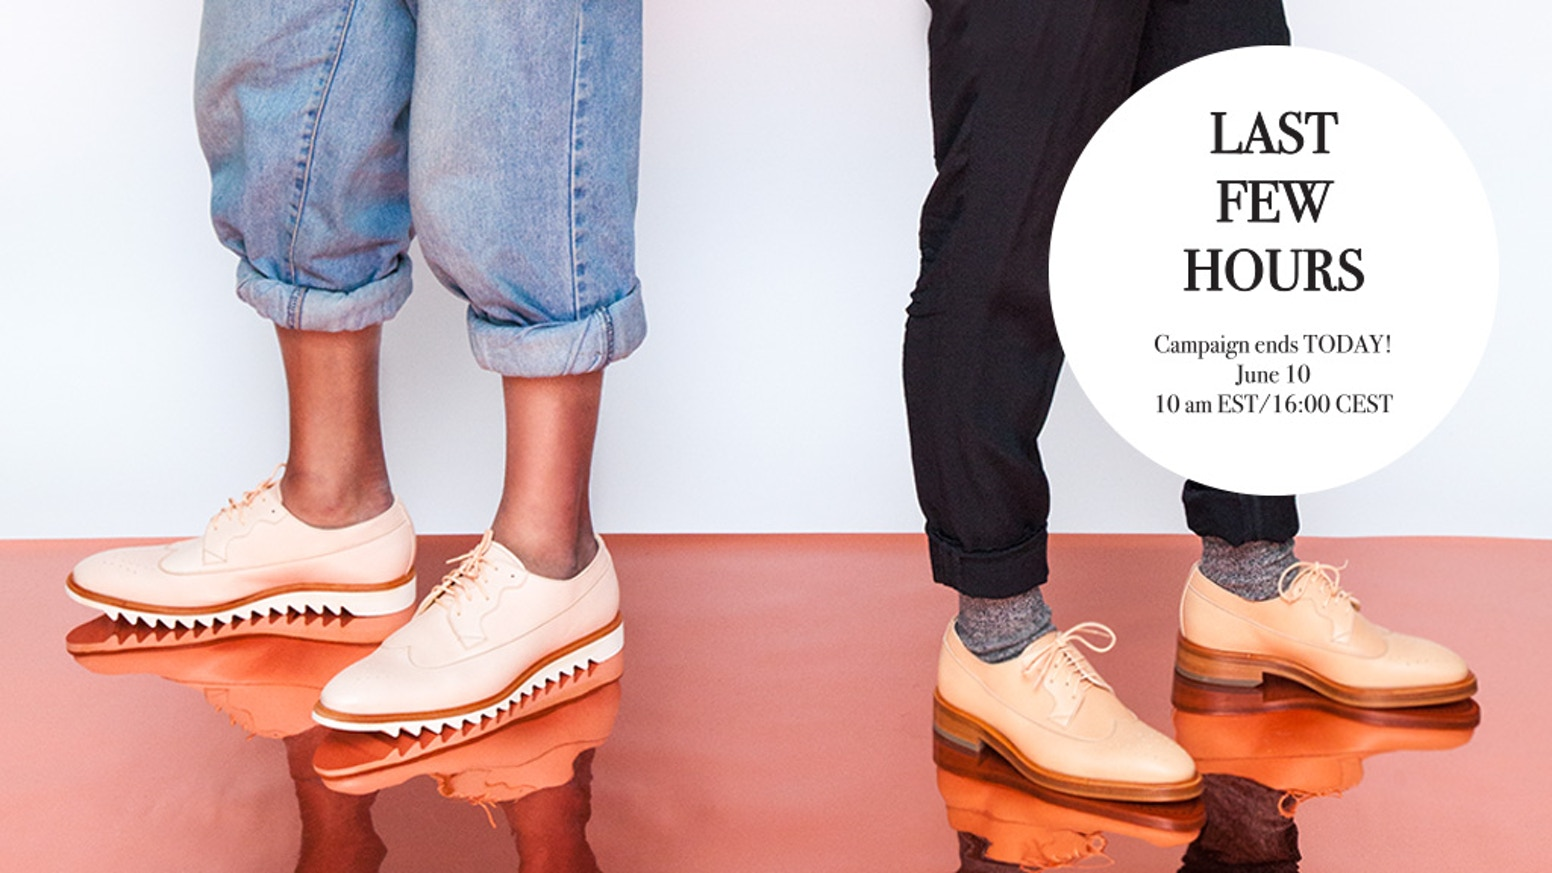 Premium quality footwear handcrafted in Portugal. Designed and created for all genders and foot sizes.